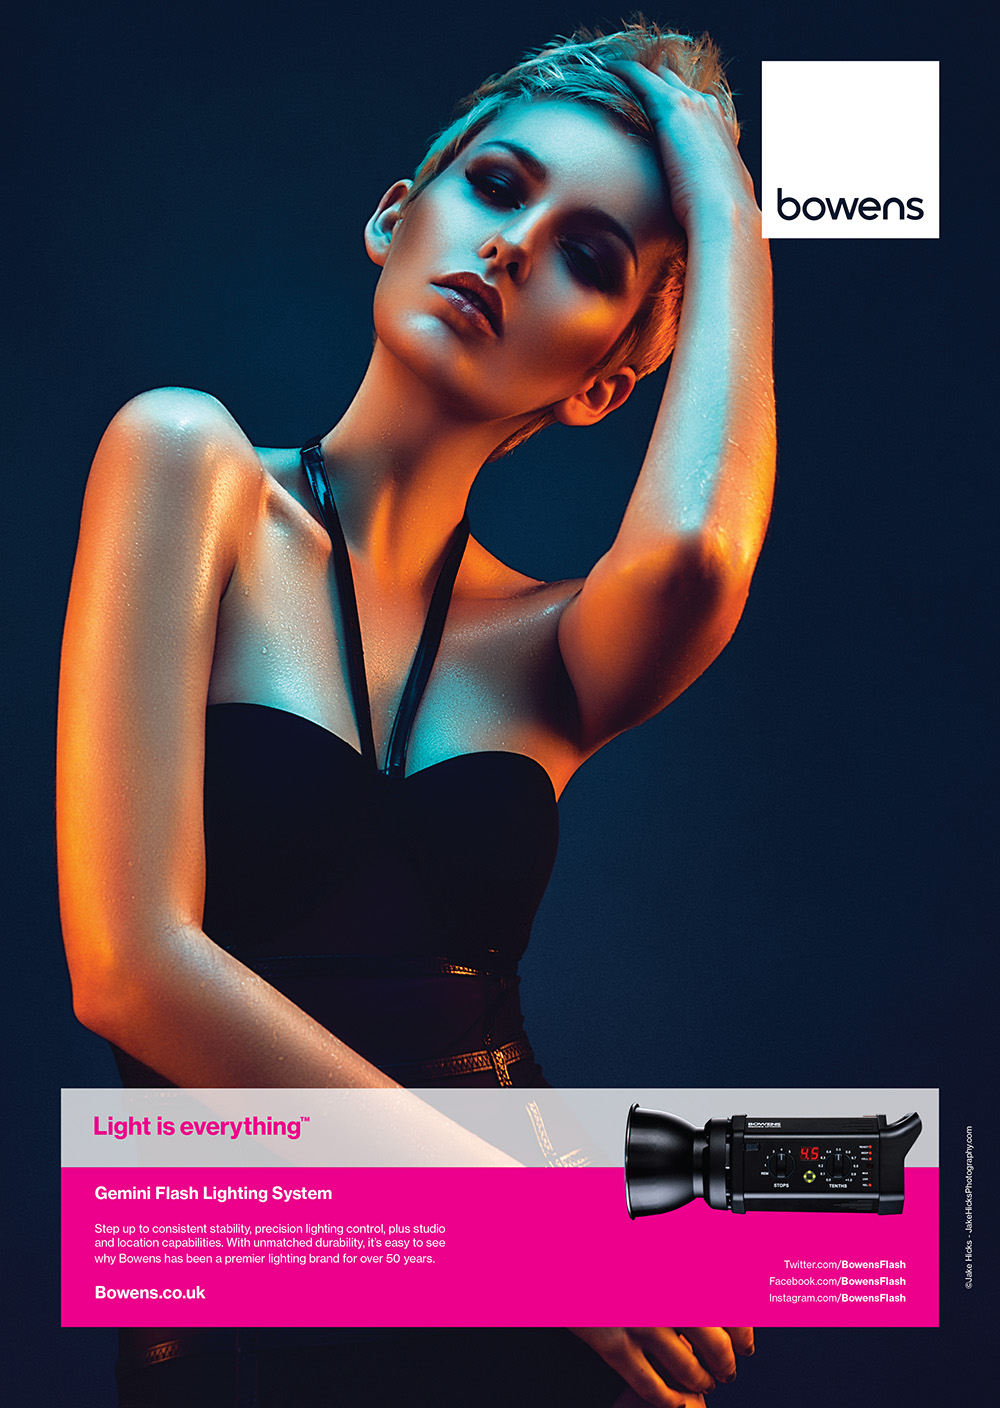 I've used and promoted the Bowens products for many years. To hear they are coming back in some form could be great news for many of us who loved exceptional quality lights at a reasonable price.